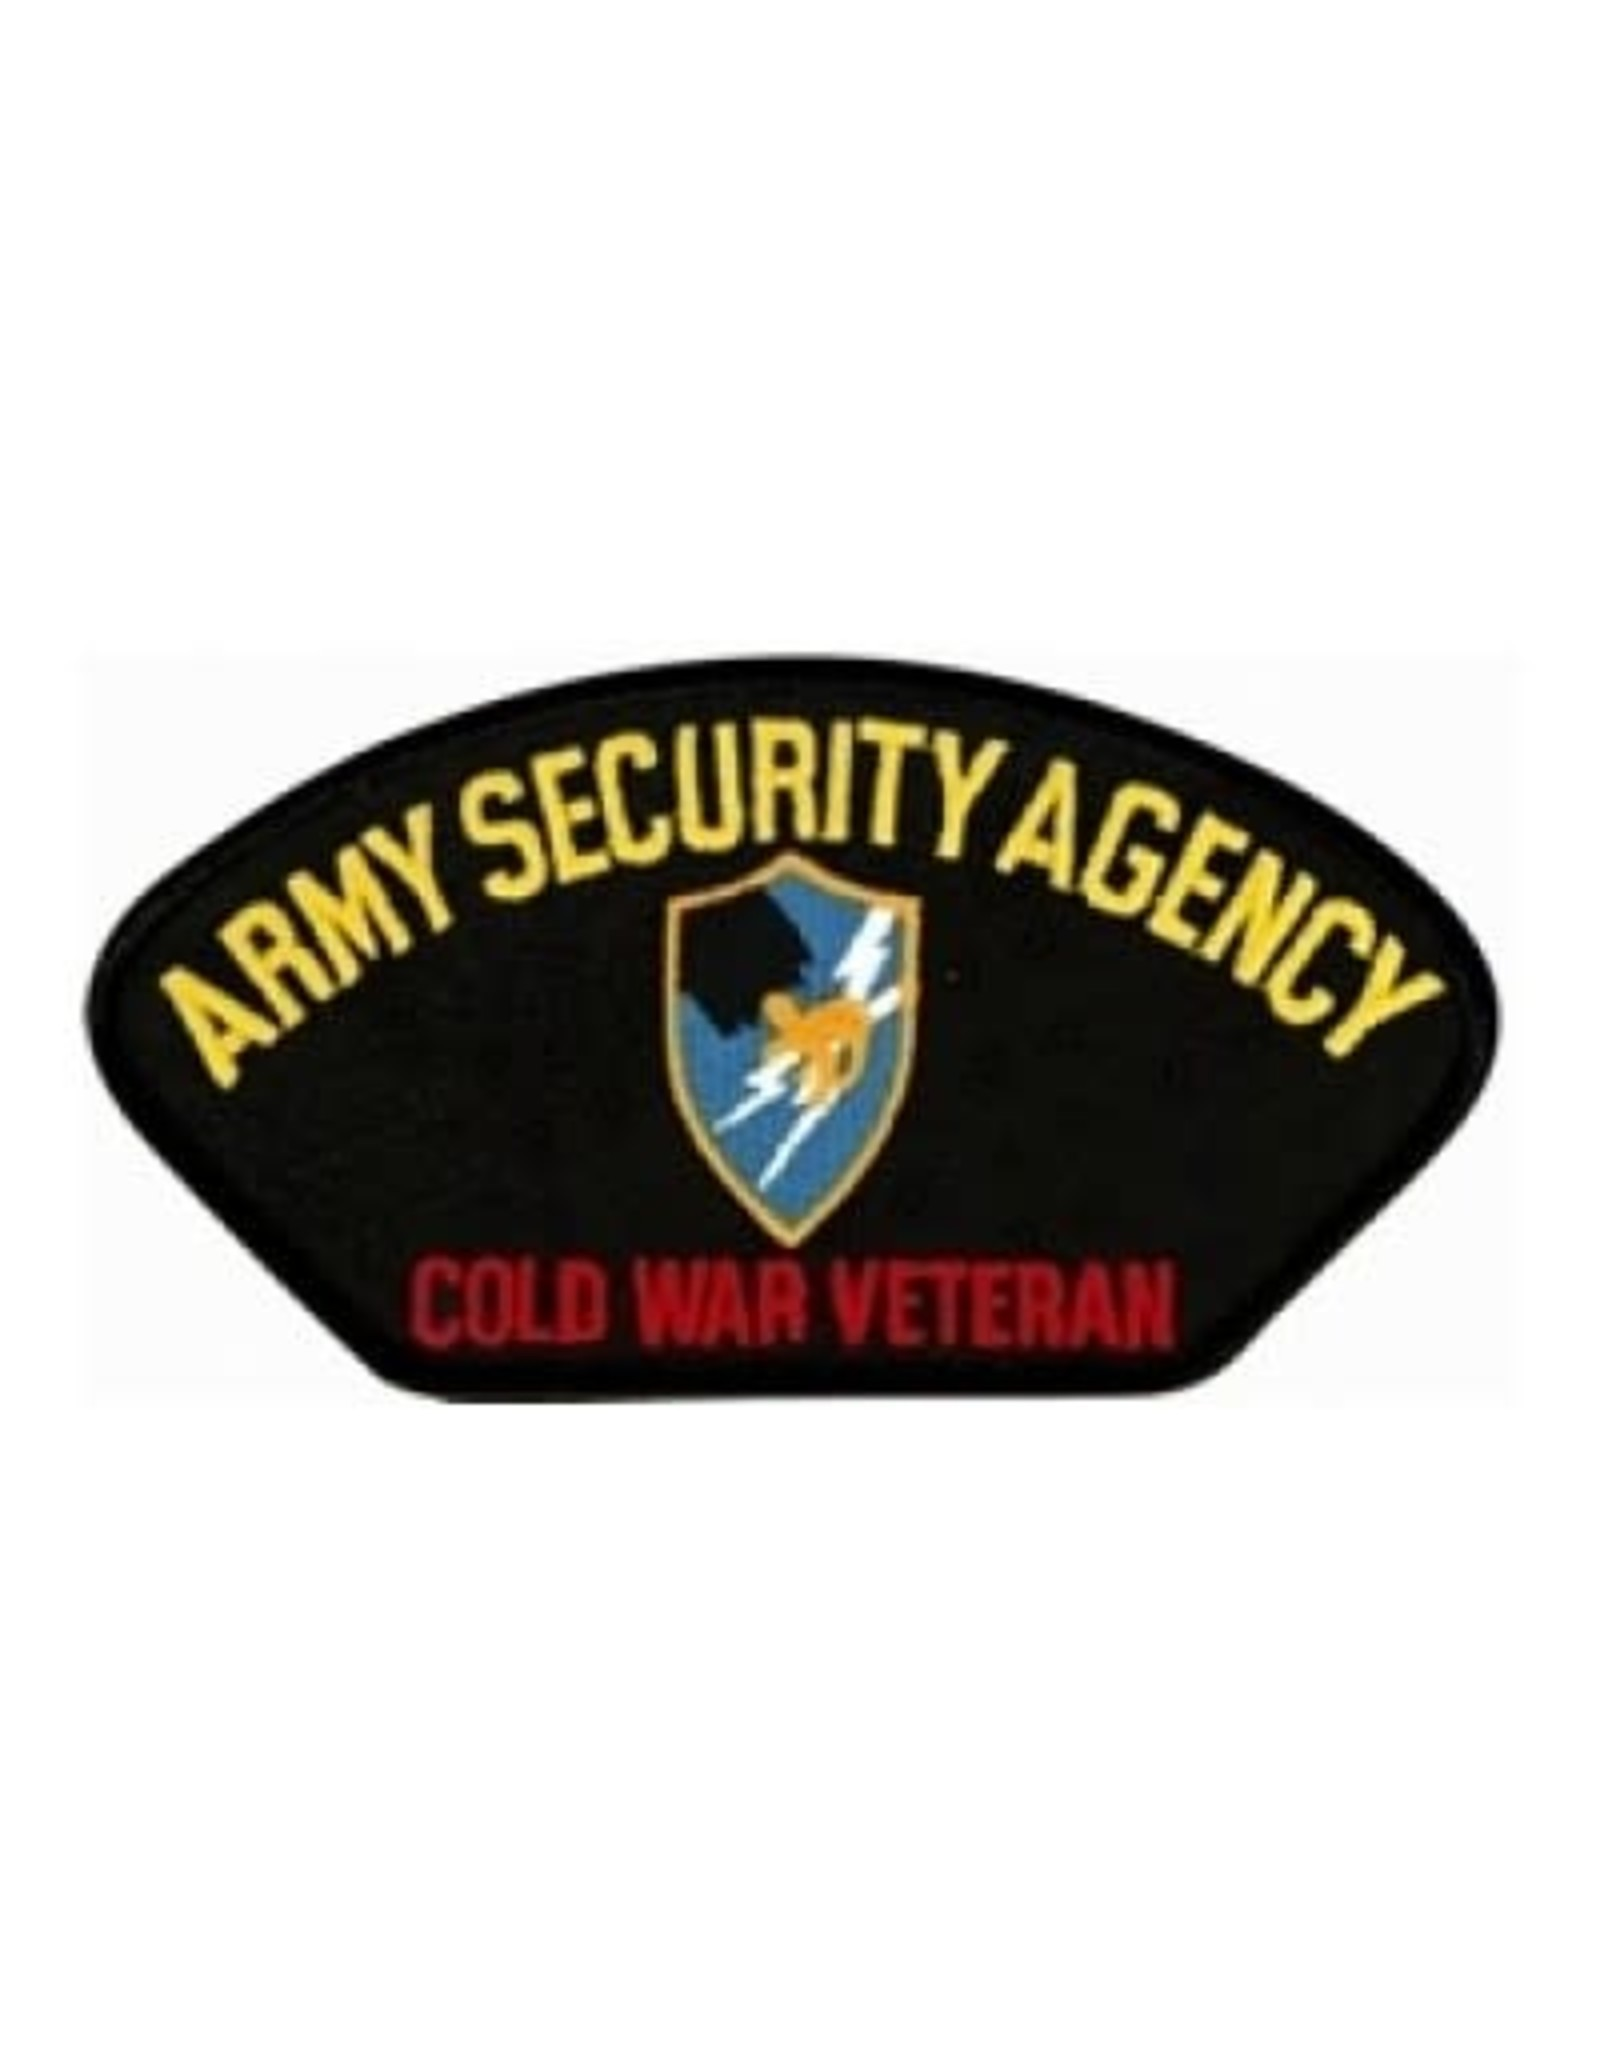 """MidMil Embroidered Army Security Agency Cold War Veteran Patch with Emblem 5.2"""" wide x 2.7"""" high Black"""